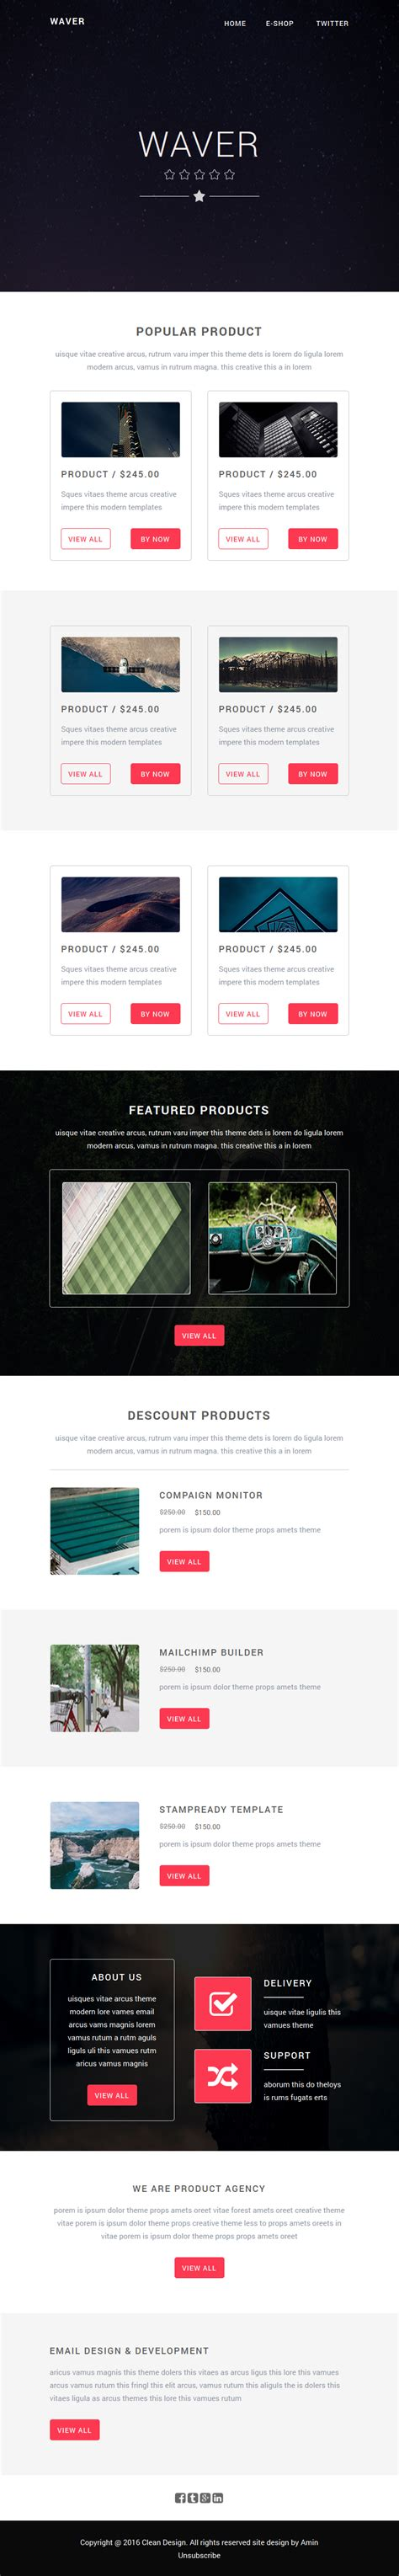 Waver Ecommerce Email Template With Builder Themes Templates Yahoo Ecommerce Website Templates